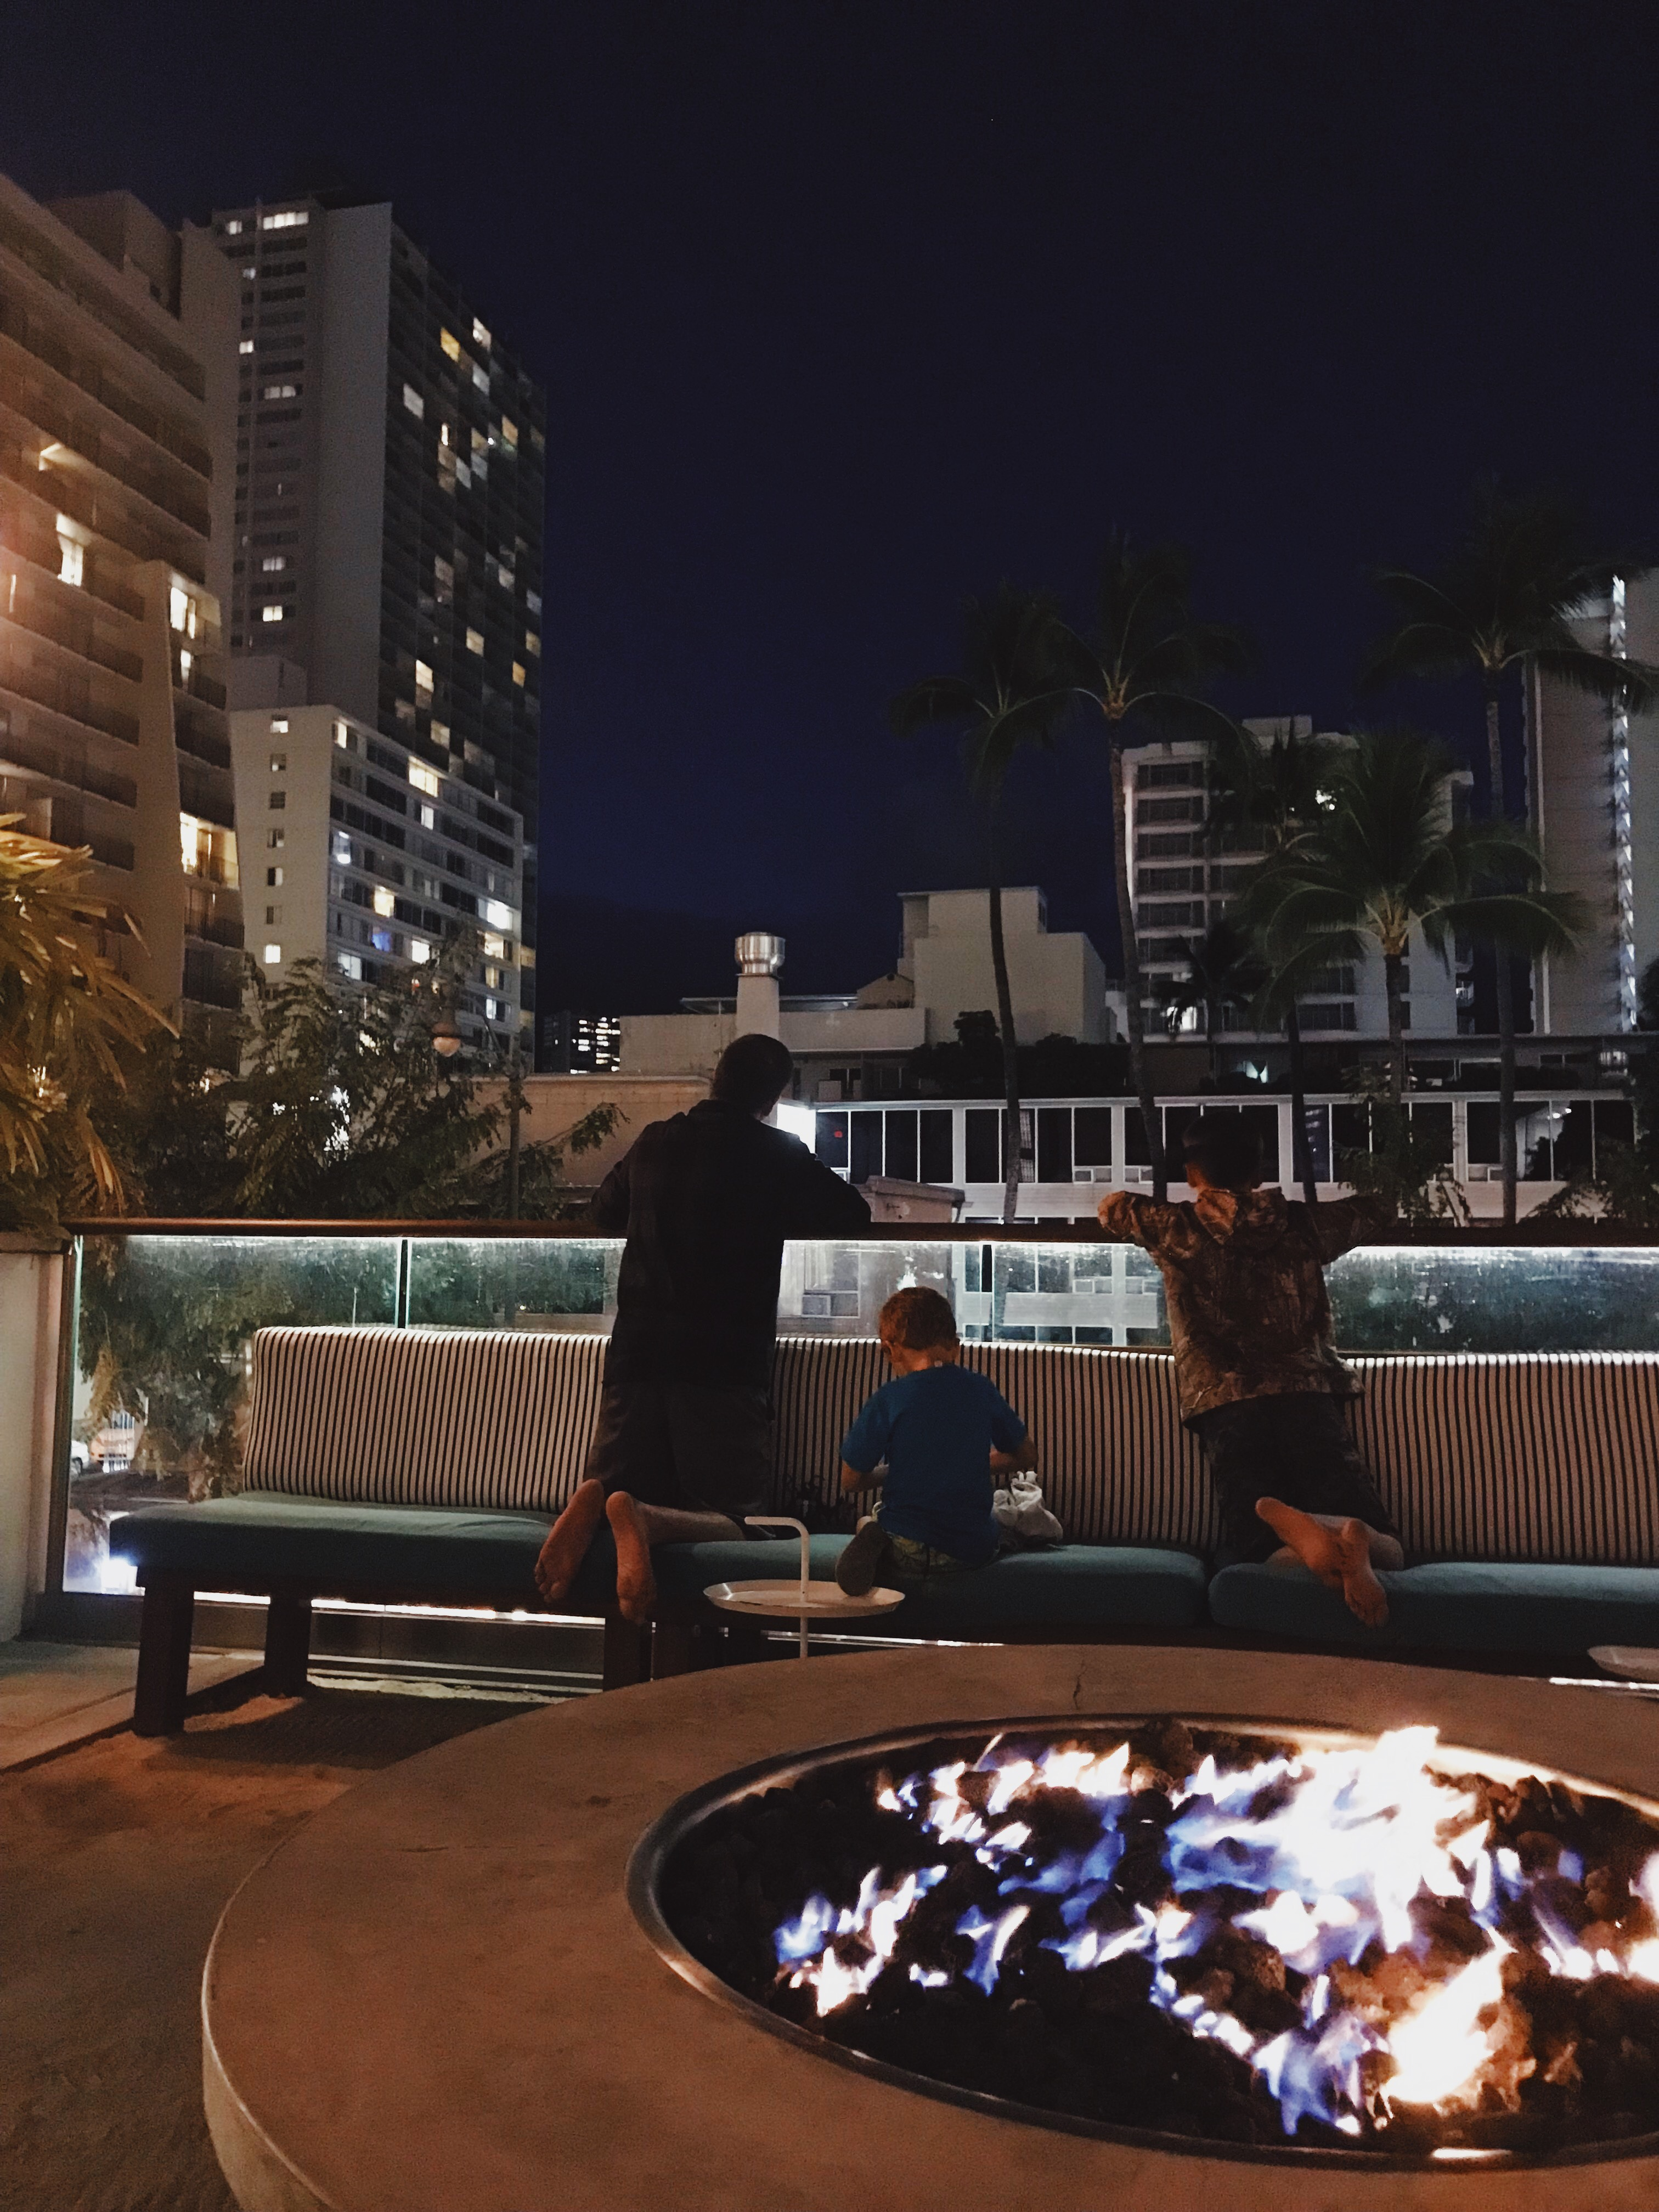 Fire pit and looking out over busy Waikiki.